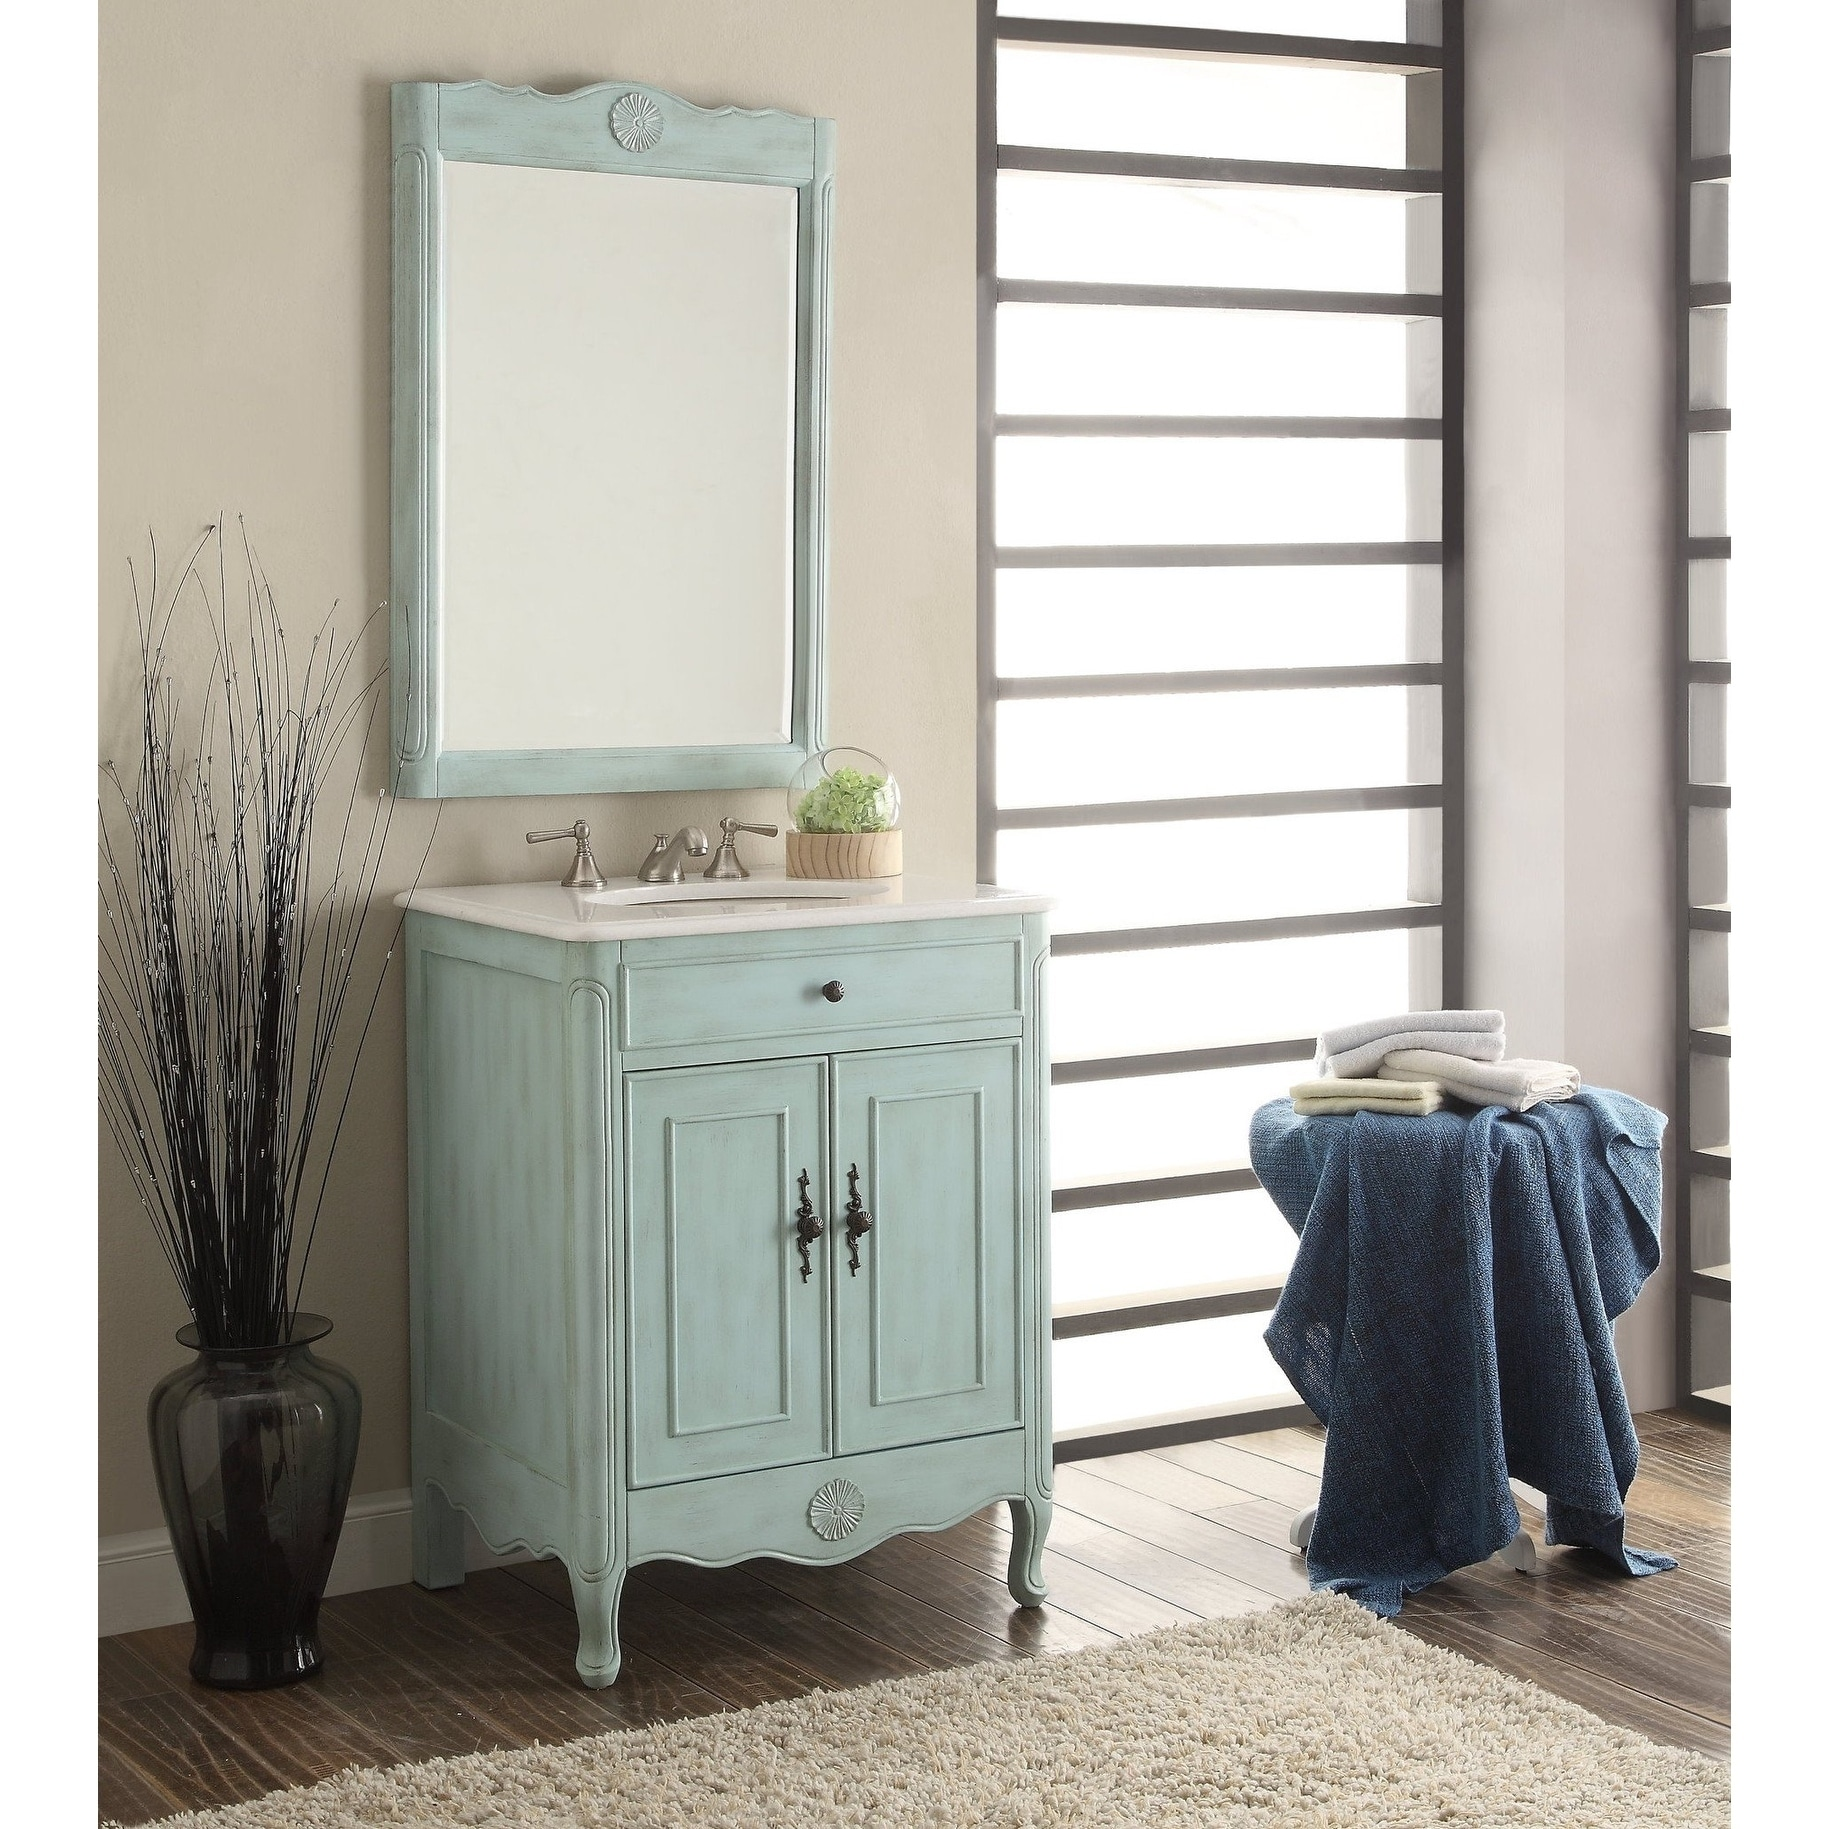 26 Benton Collection Daleville L Blue Vintage Bathroom Vanity Sink Overstock 20729035